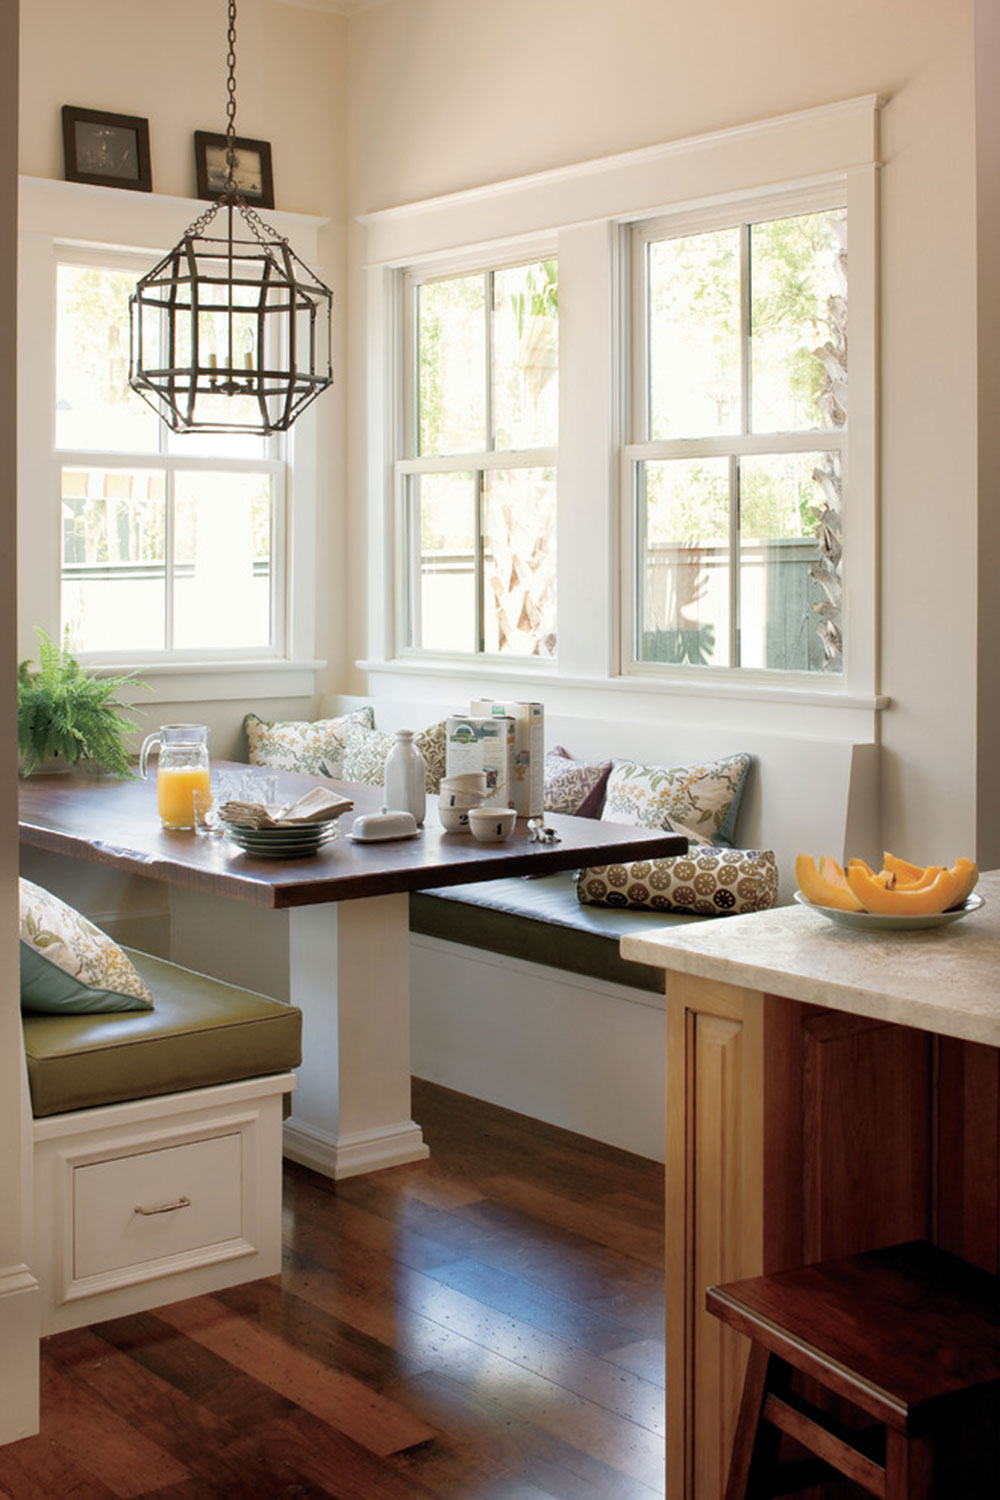 Breakfast-Nook-Design-Ideas-for-Awesome-Mornings1 Breakfast Nook-Design-Ideas for Awesome Mornings